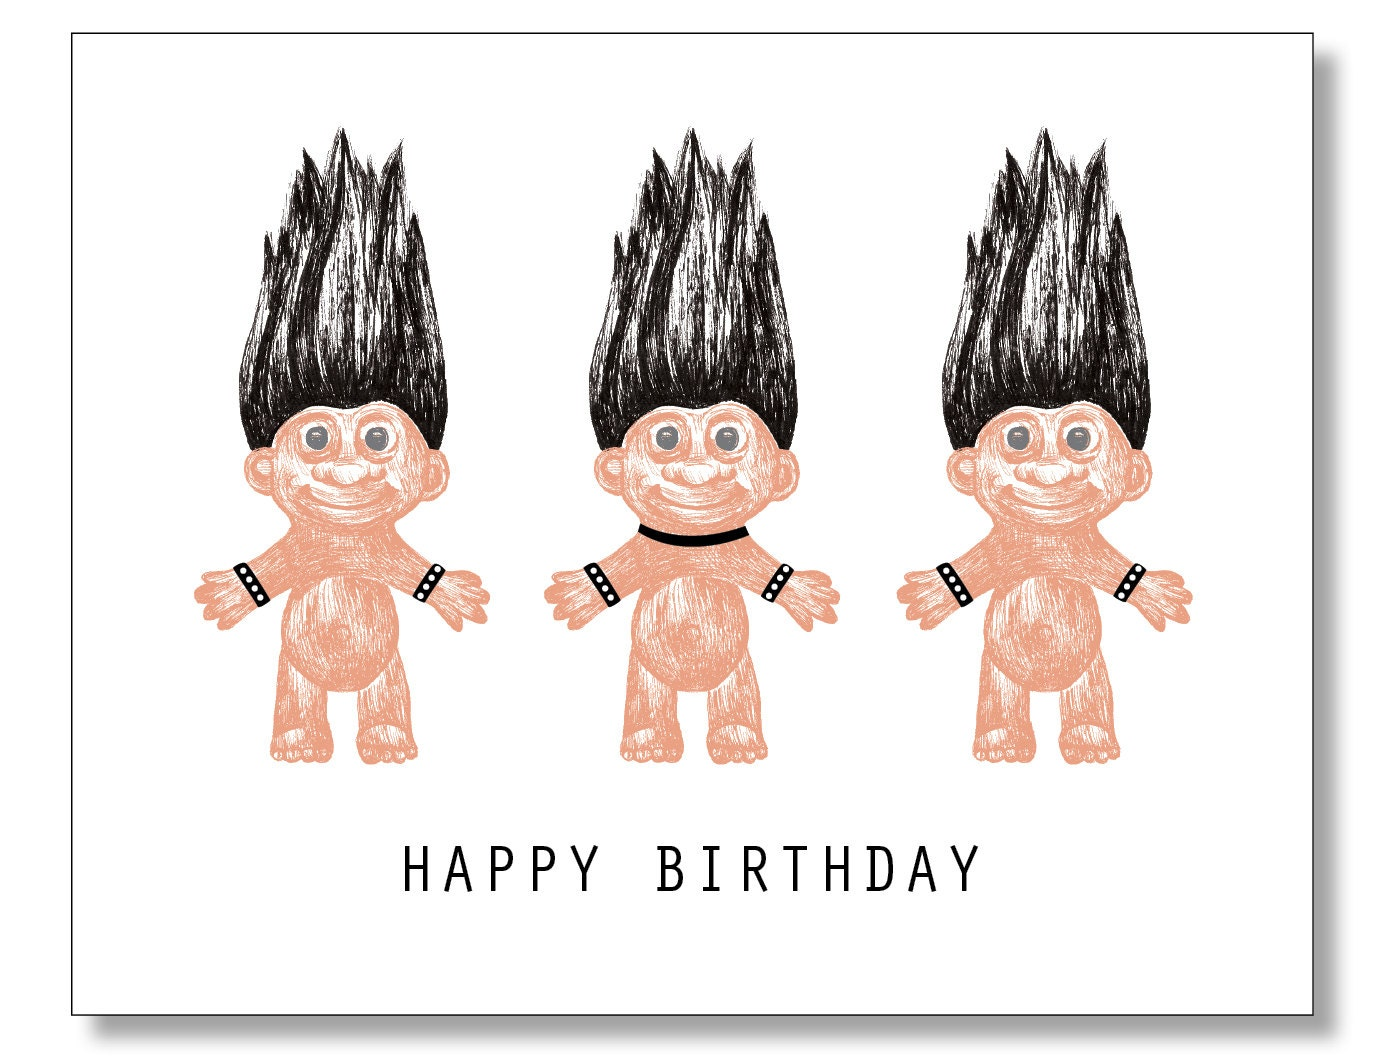 GOTH Troll Dolls HAPPY BIRTHDAY Card Bondage Heavy Metal – Emo Birthday Cards